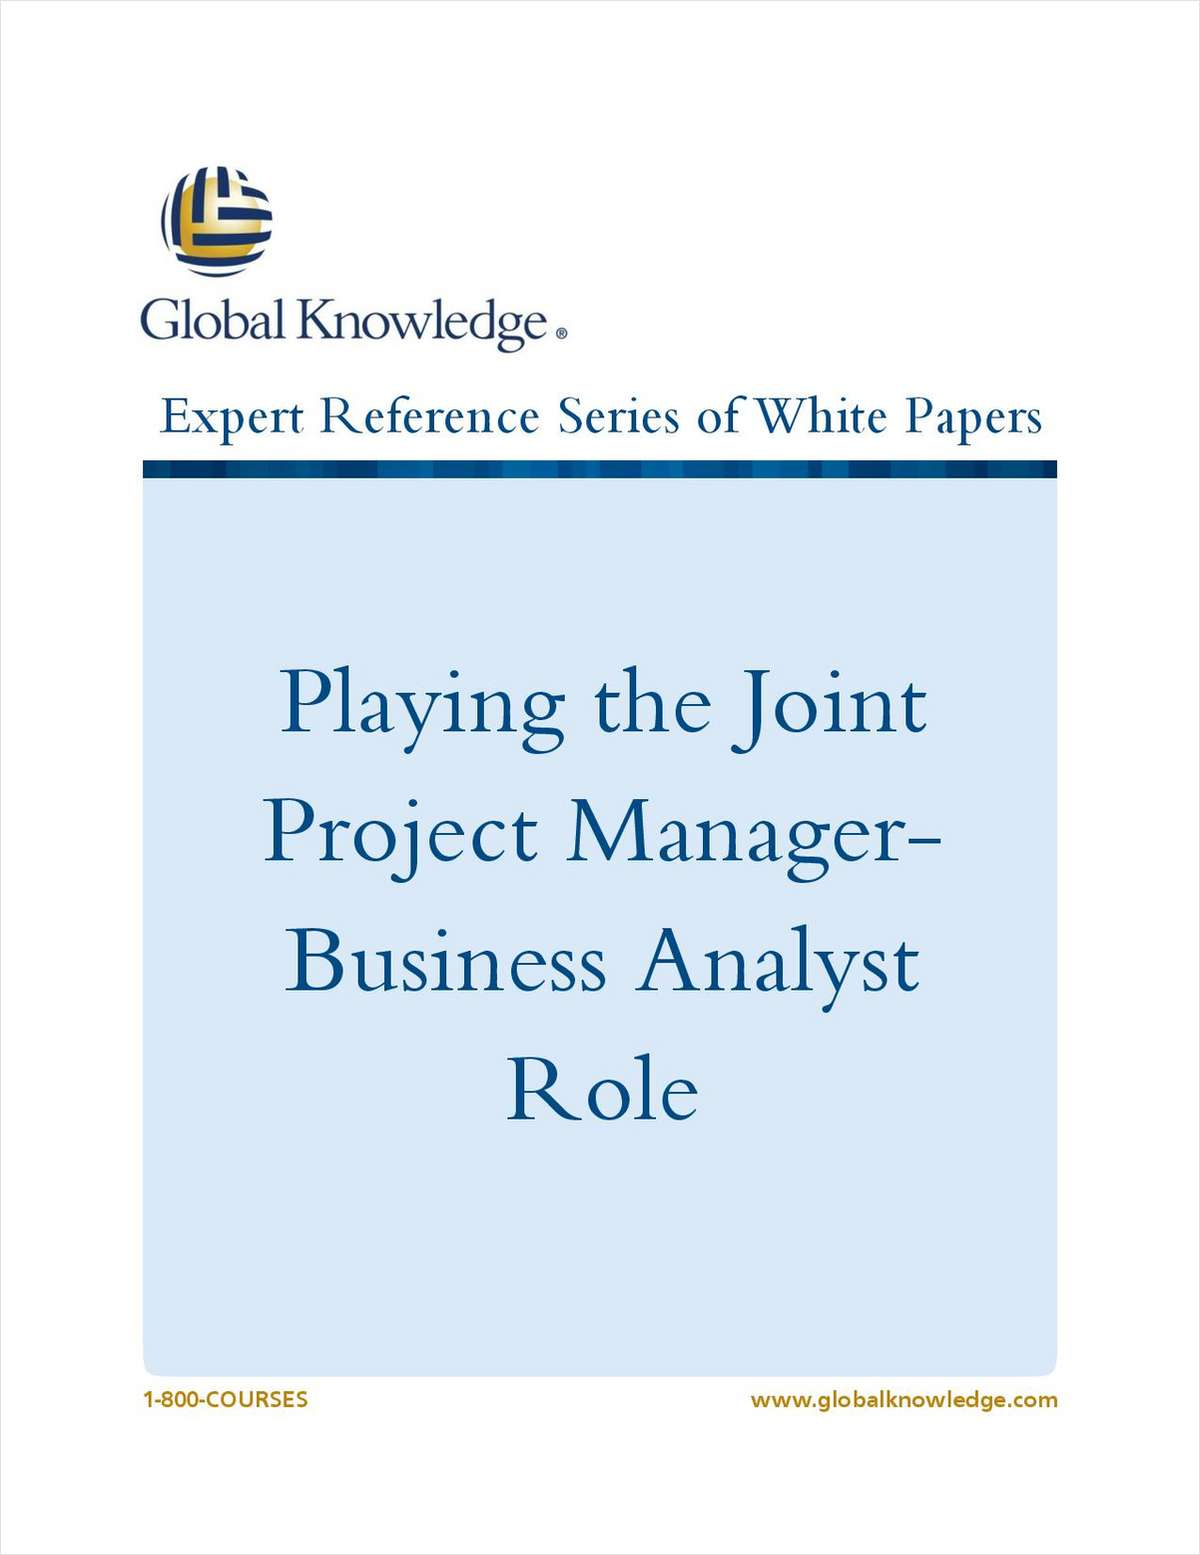 Playing the Joint Project Manager-Business Analyst Role